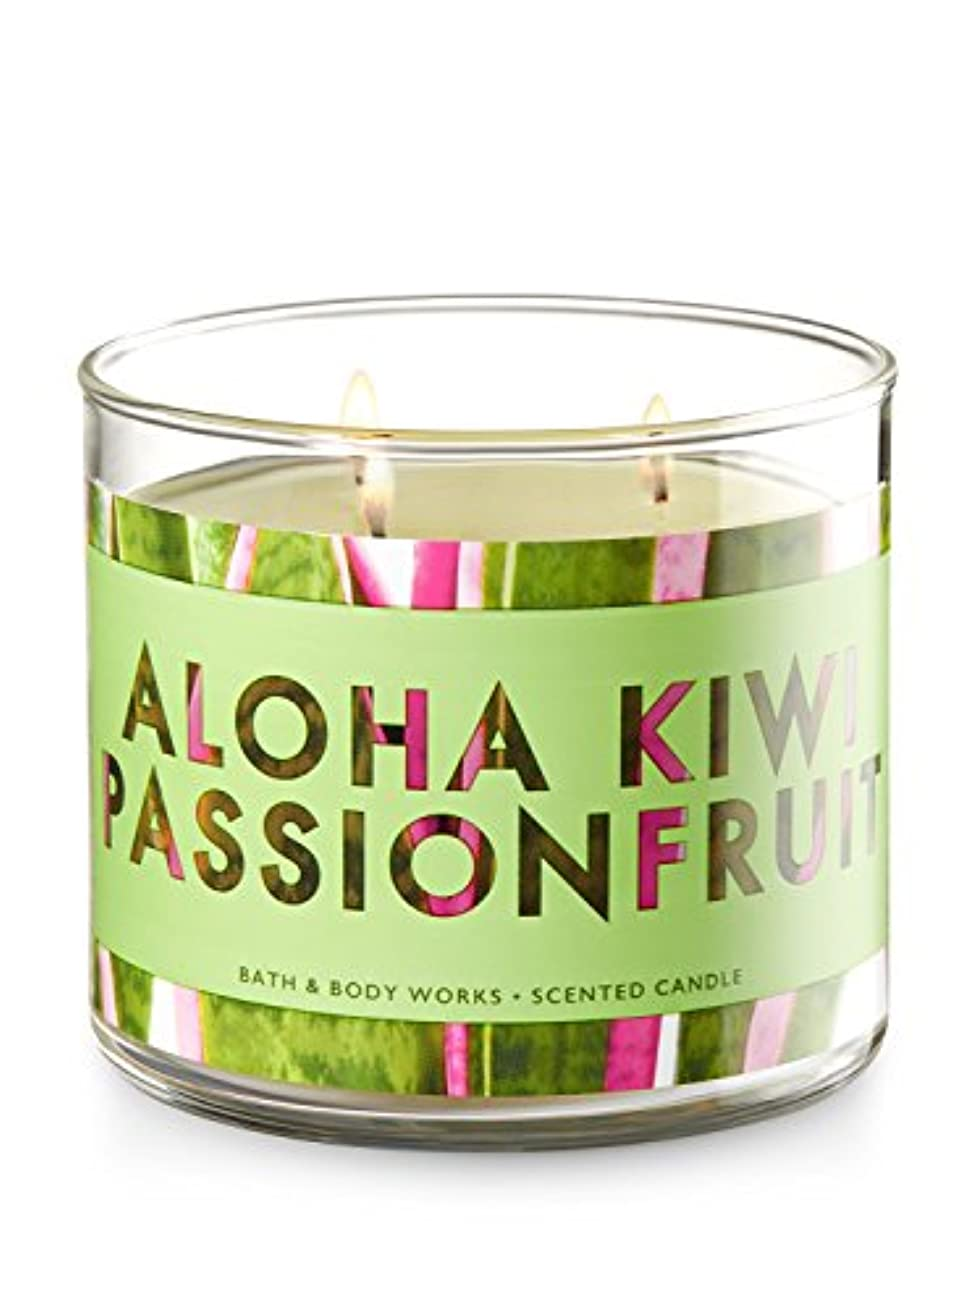 受取人提供するハッチBath and Body Works 3 Wick Scented Candle Aloha Kiwi Passionfruit 430ml